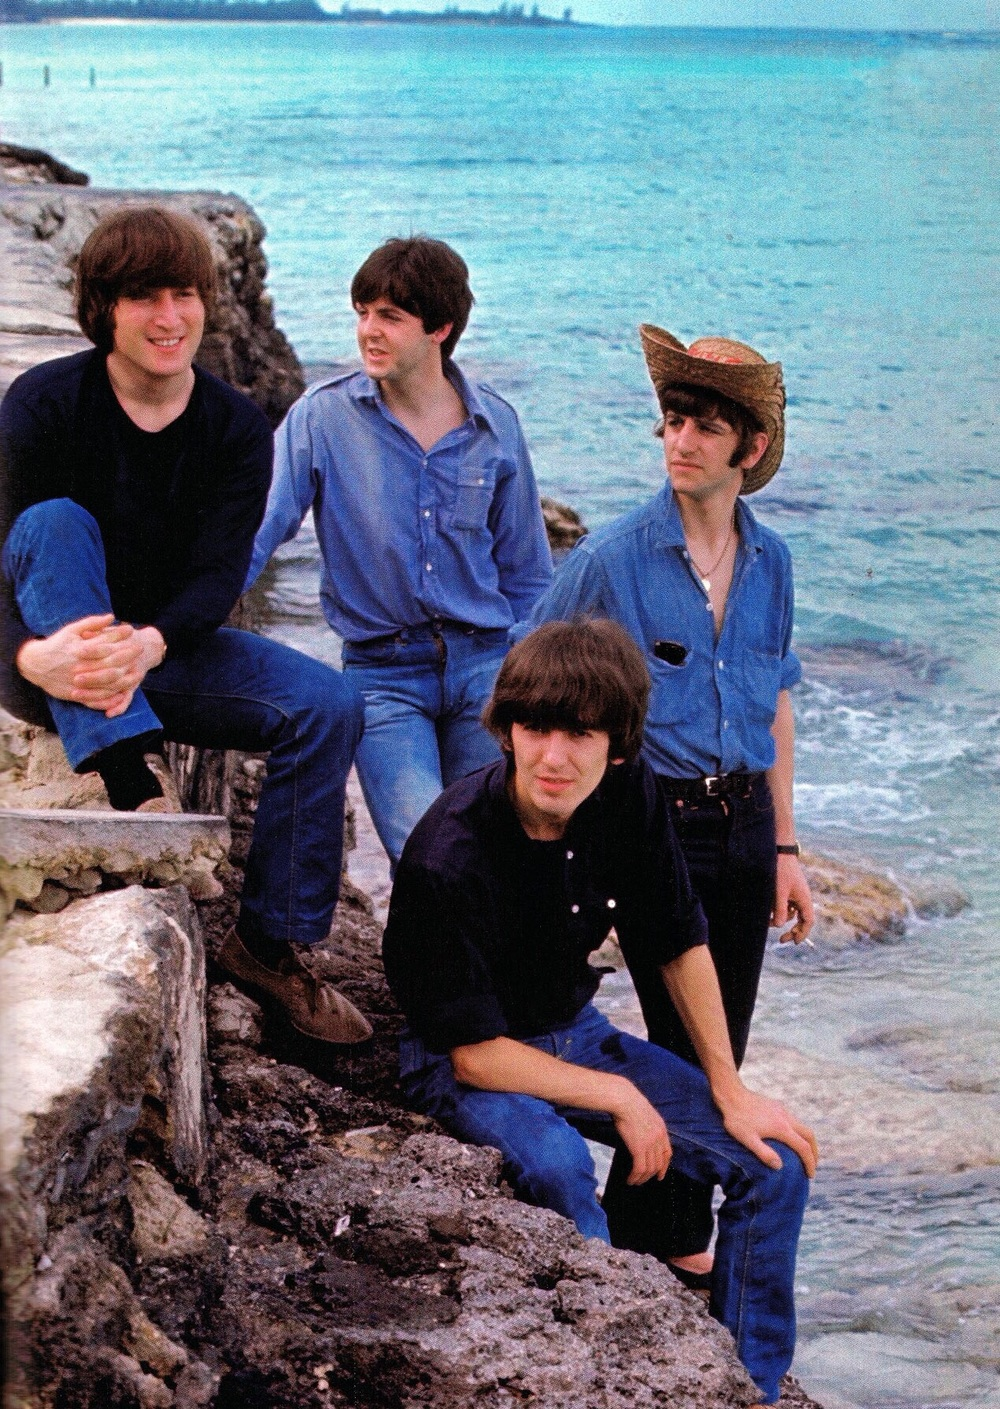 The Beatles filming Help! in the Bahamas, 1965.